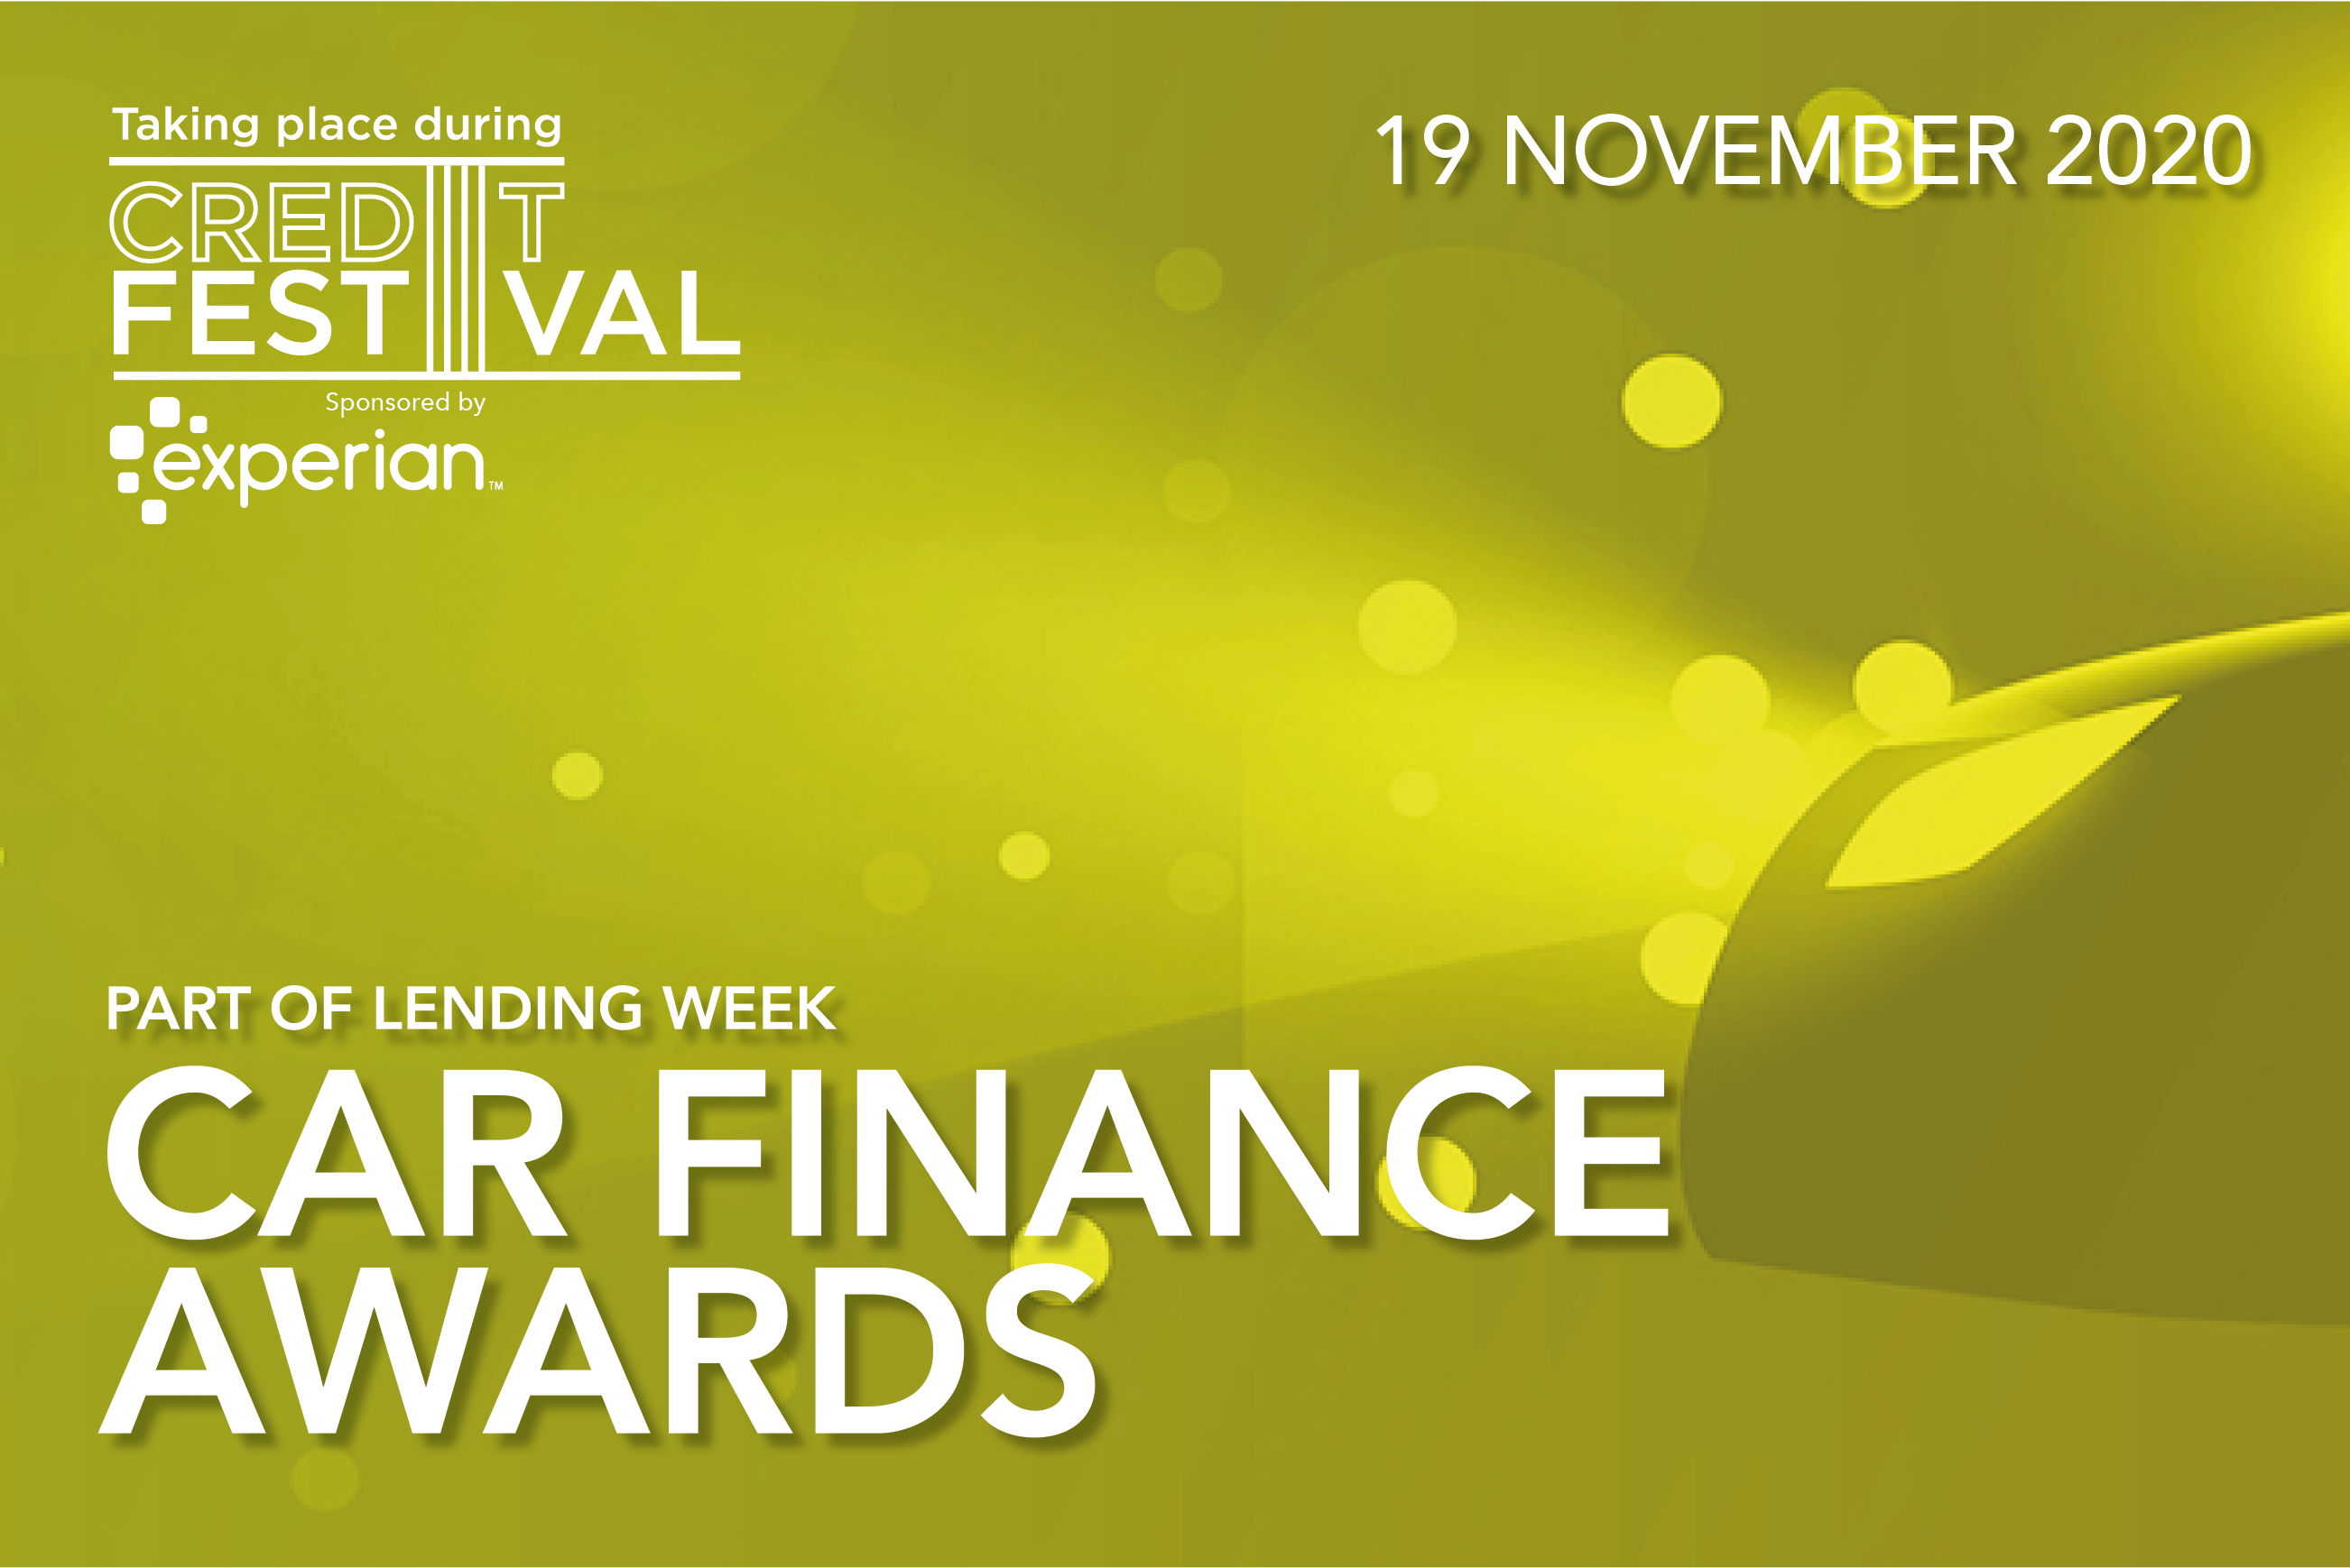 Car Finance Awards